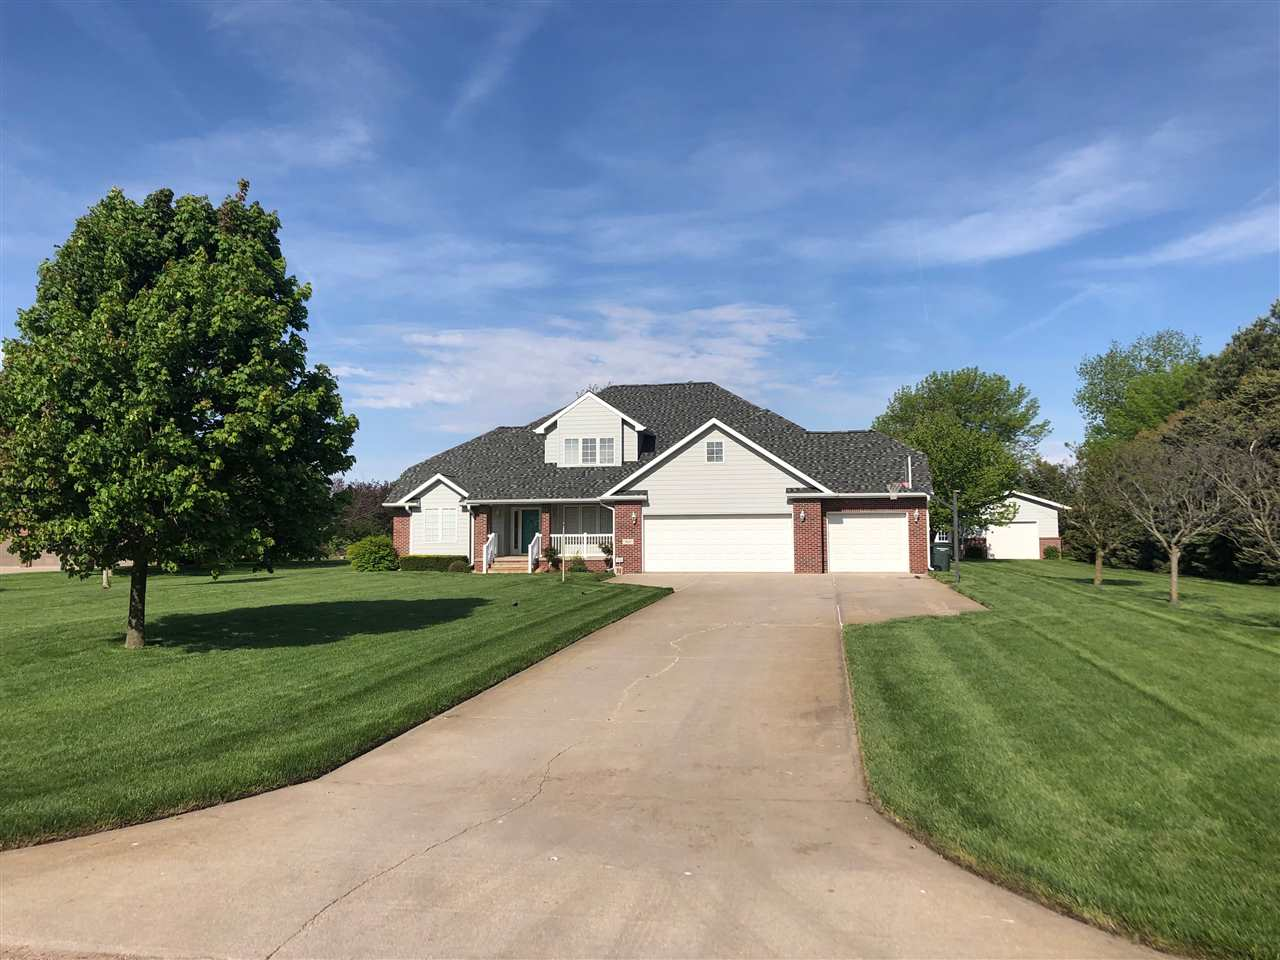 5645 1st Ave., one of homes for sale in Hastings